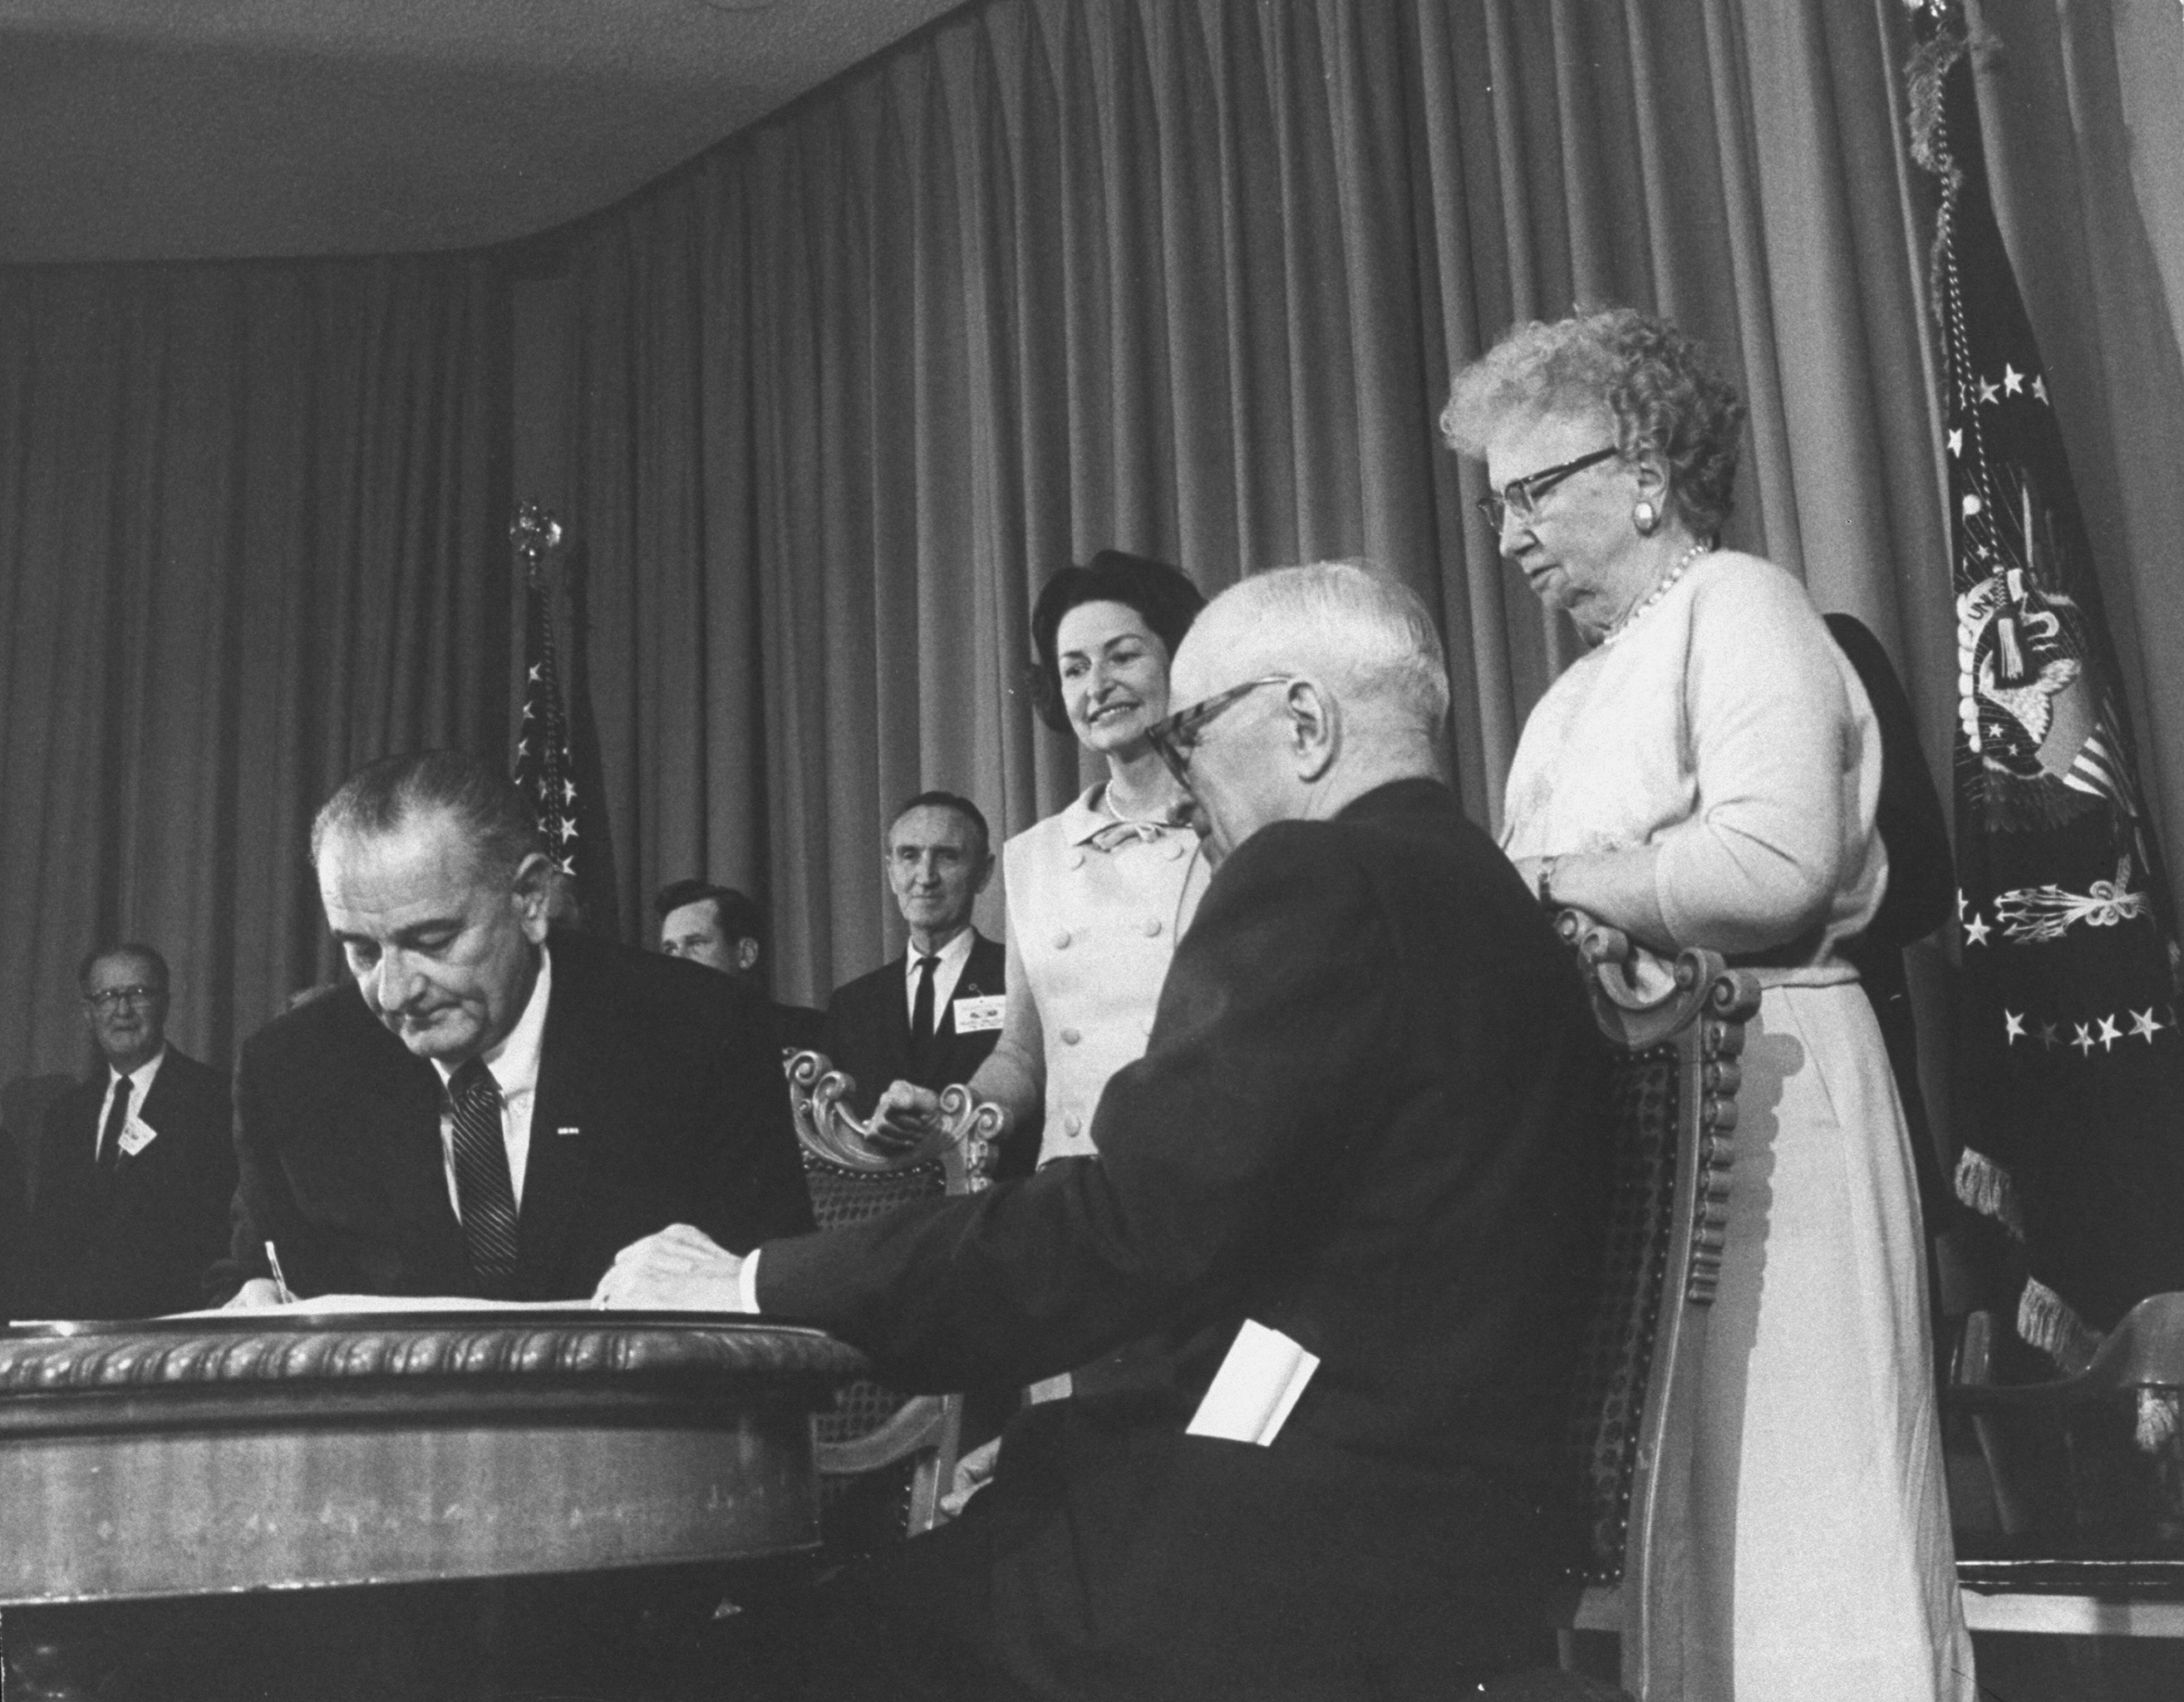 (L-R) Pres. Lyndon B. Johnson, Lady Bird Johnson, Harry S. Truman, and Bess Truman at signing of Medicare bill on July 30, 1965, at the Harry S. Truman Library & Museum in Independence, Missouri.